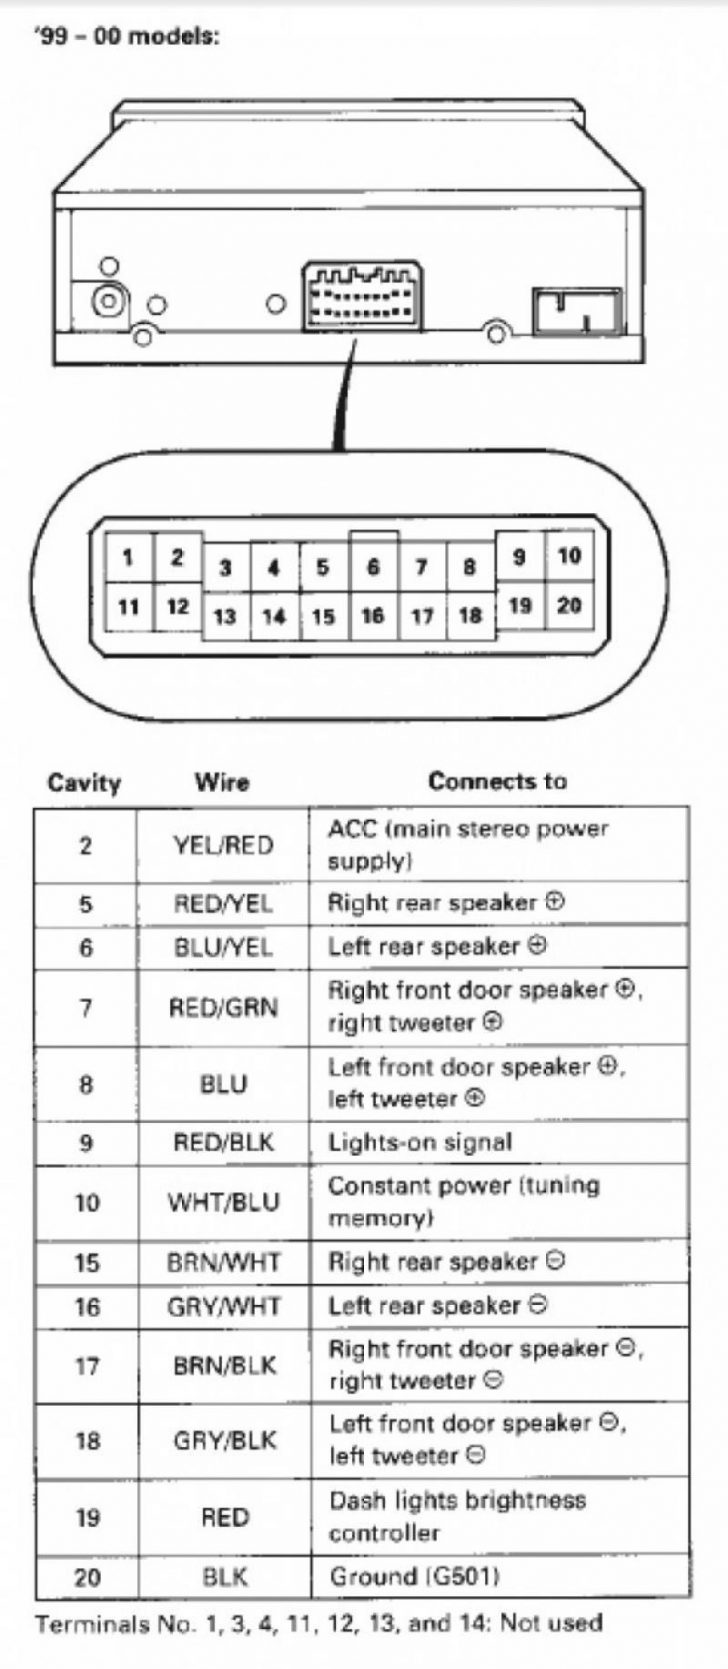 hight resolution of jvc wire diagram wiring diagram page wiring diagram for a jvc car stereo